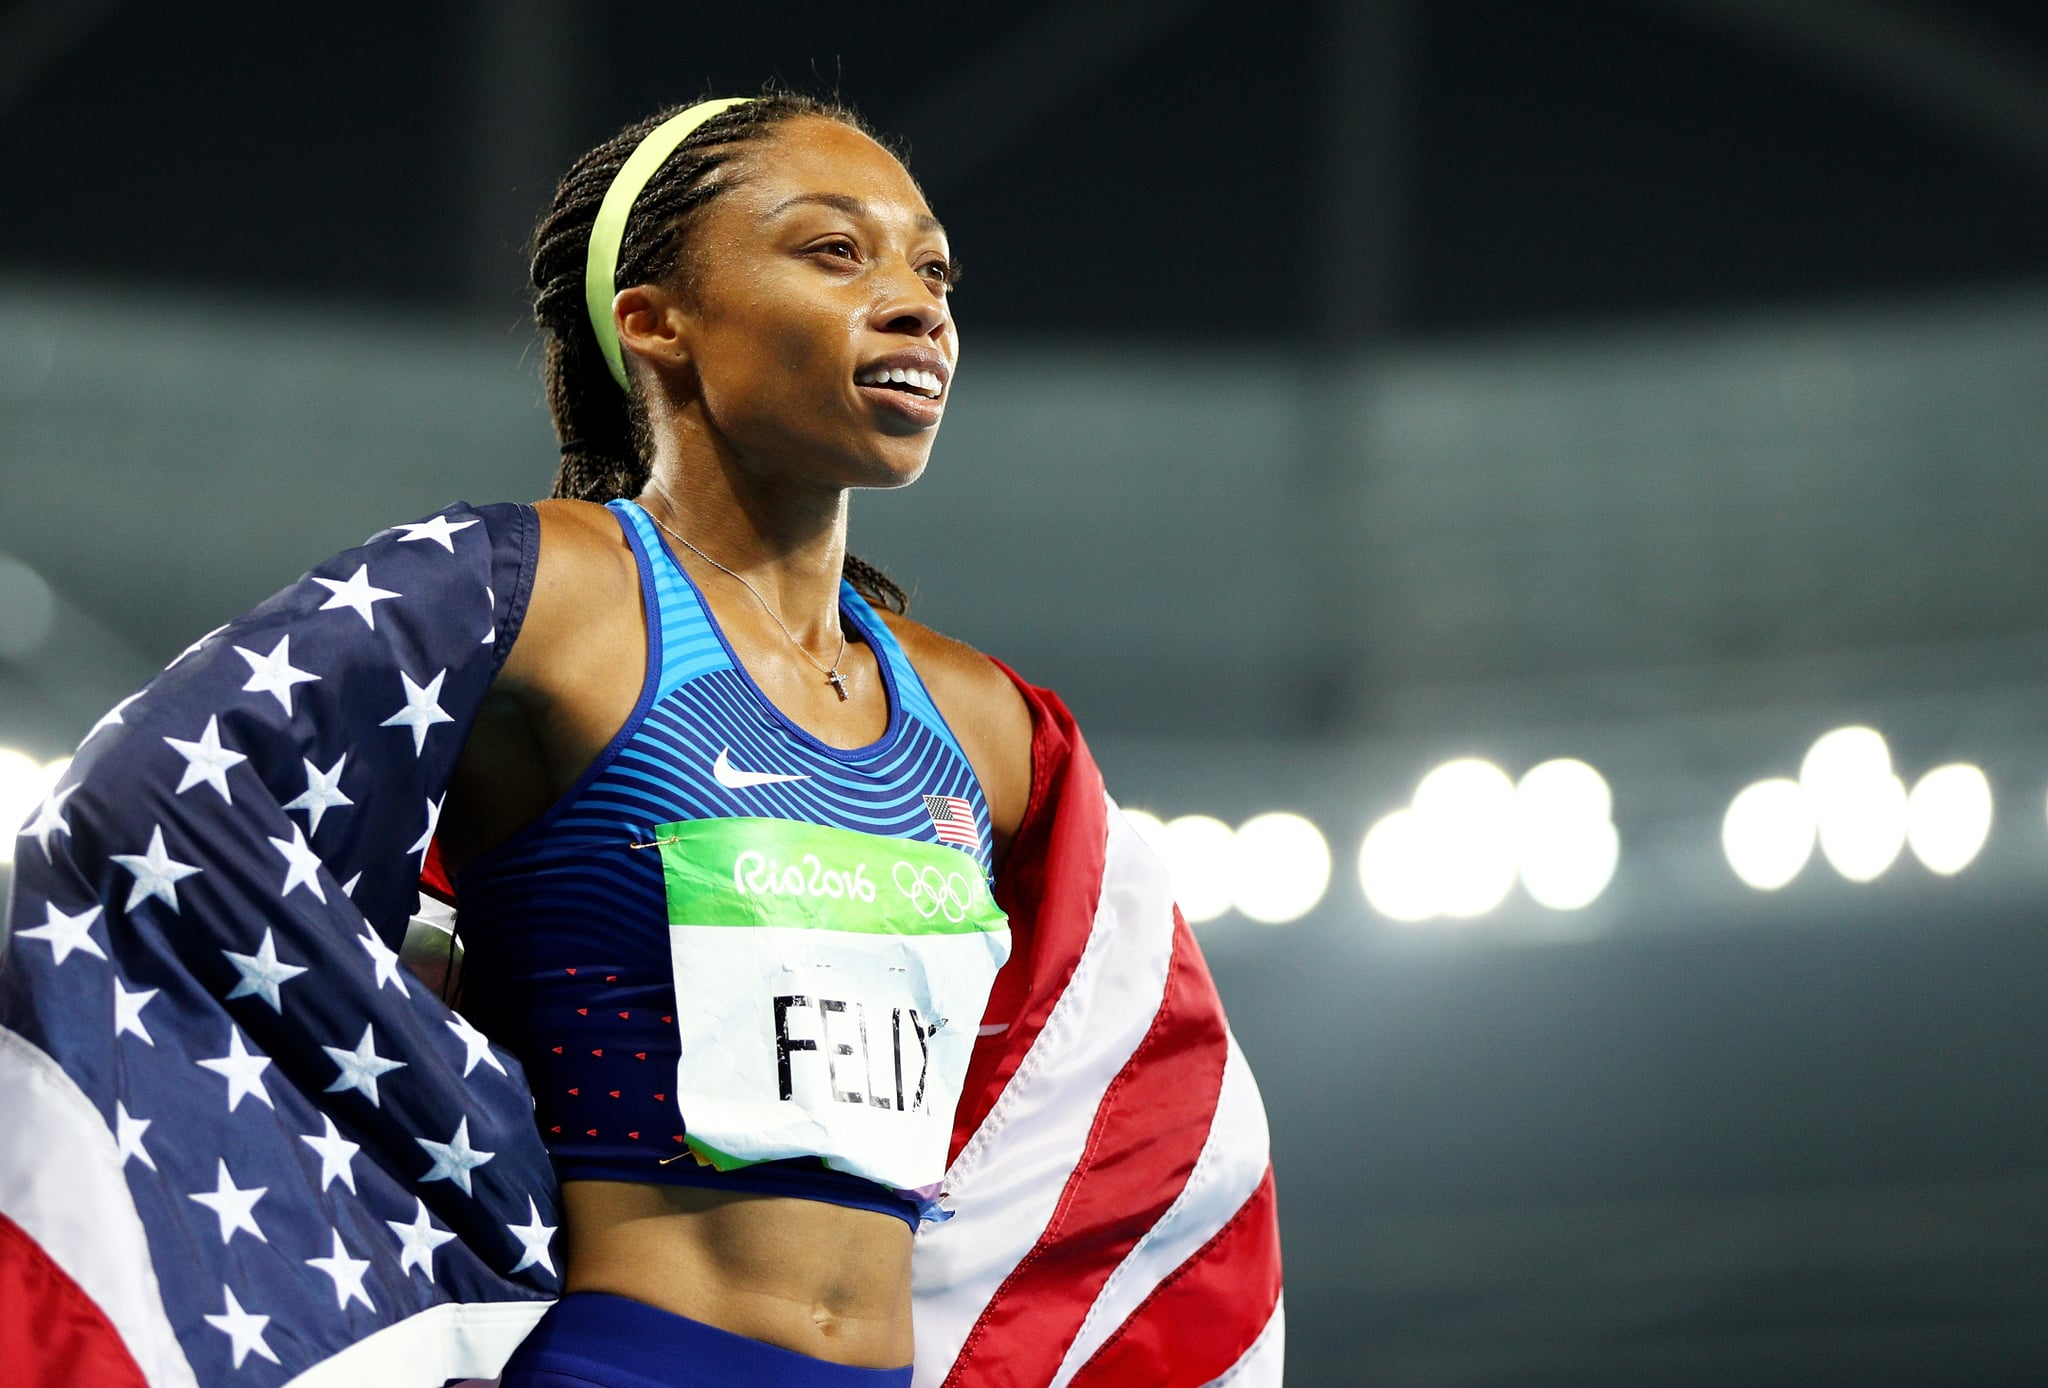 RIO DE JANEIRO, BRAZIL - AUGUST 20:  Allyson Felix of the United States reacts after winning gold during the Women's 4 x 400 meter Relay on Day 15 of the Rio 2016 Olympic Games at the Olympic Stadium on August 20, 2016 in Rio de Janeiro, Brazil.  (Photo by Ian Walton/Getty Images)